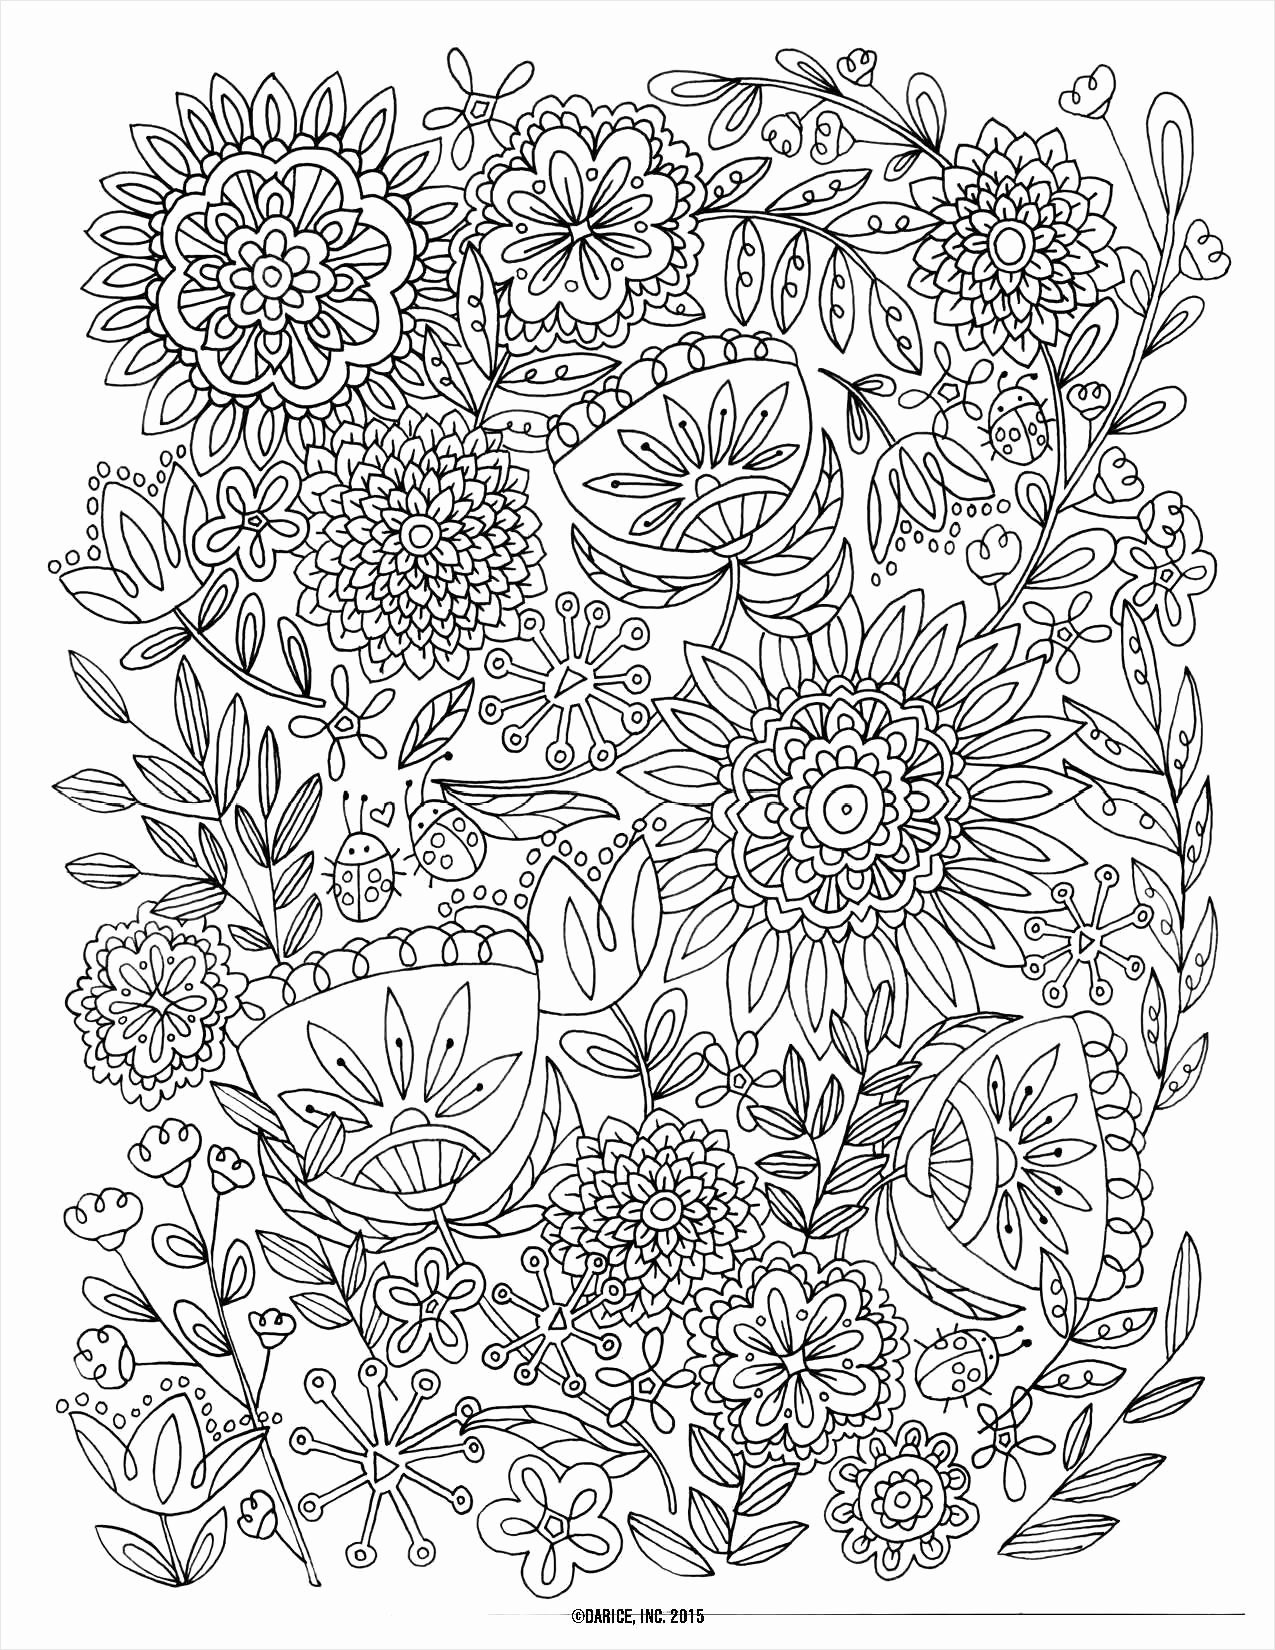 black and white vases cheap of unique cool vases flower vase coloring page pages flowers in a top i with regard to see also related to unique cool vases flower vase coloring page pages flowers in a top i 0d images below